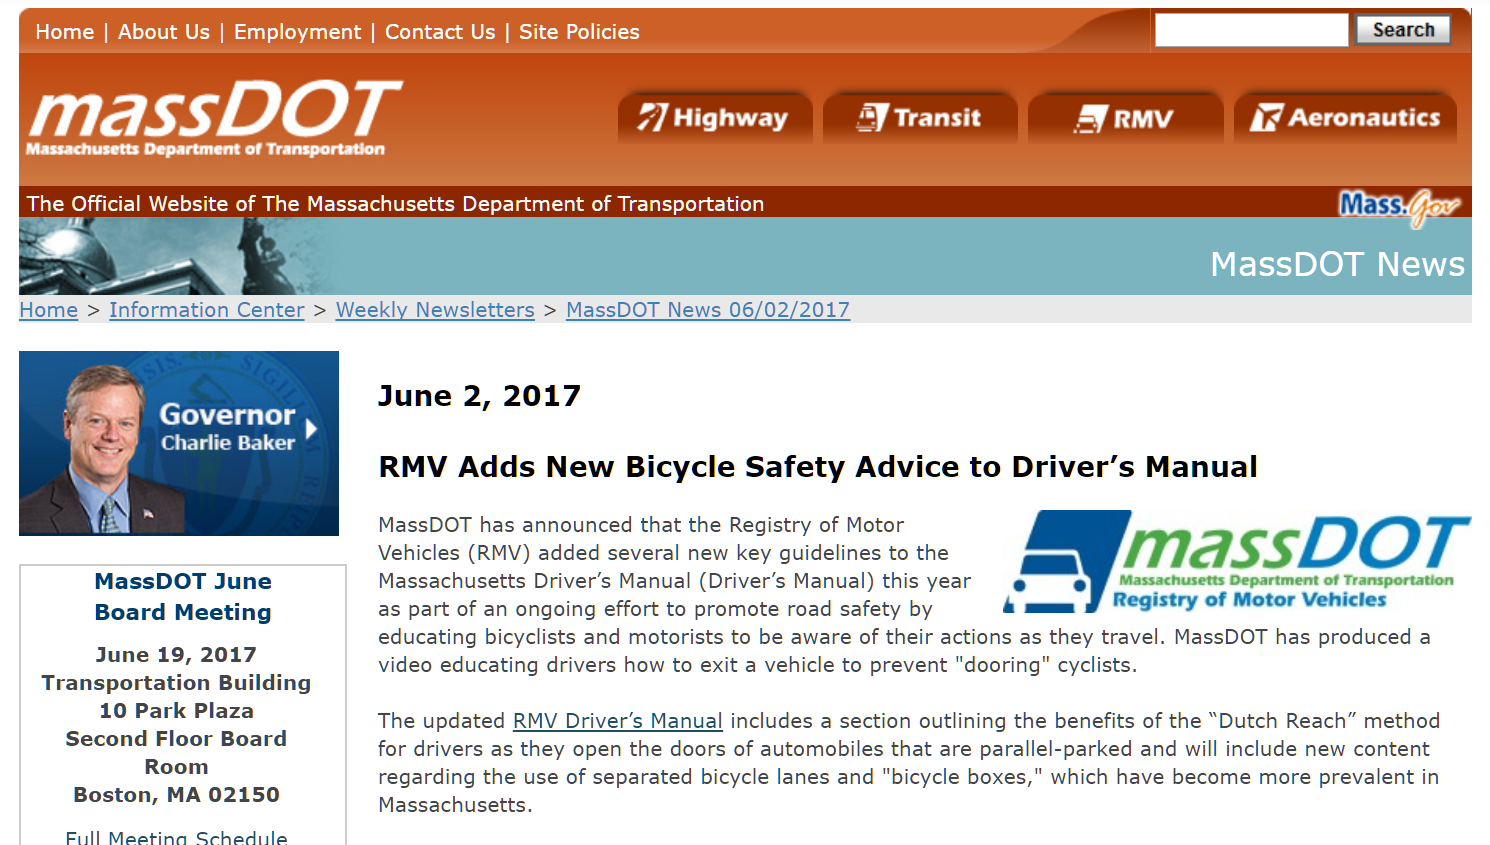 Official MassDOT announcement: state driver's manual now includes Dutch Reach far hand method to avoid dooring bicyclists thus prevent crashes, accidents harming cyclists, endangering drivers and passengers, & reducing door damage, EMS/EMT & medical costs.